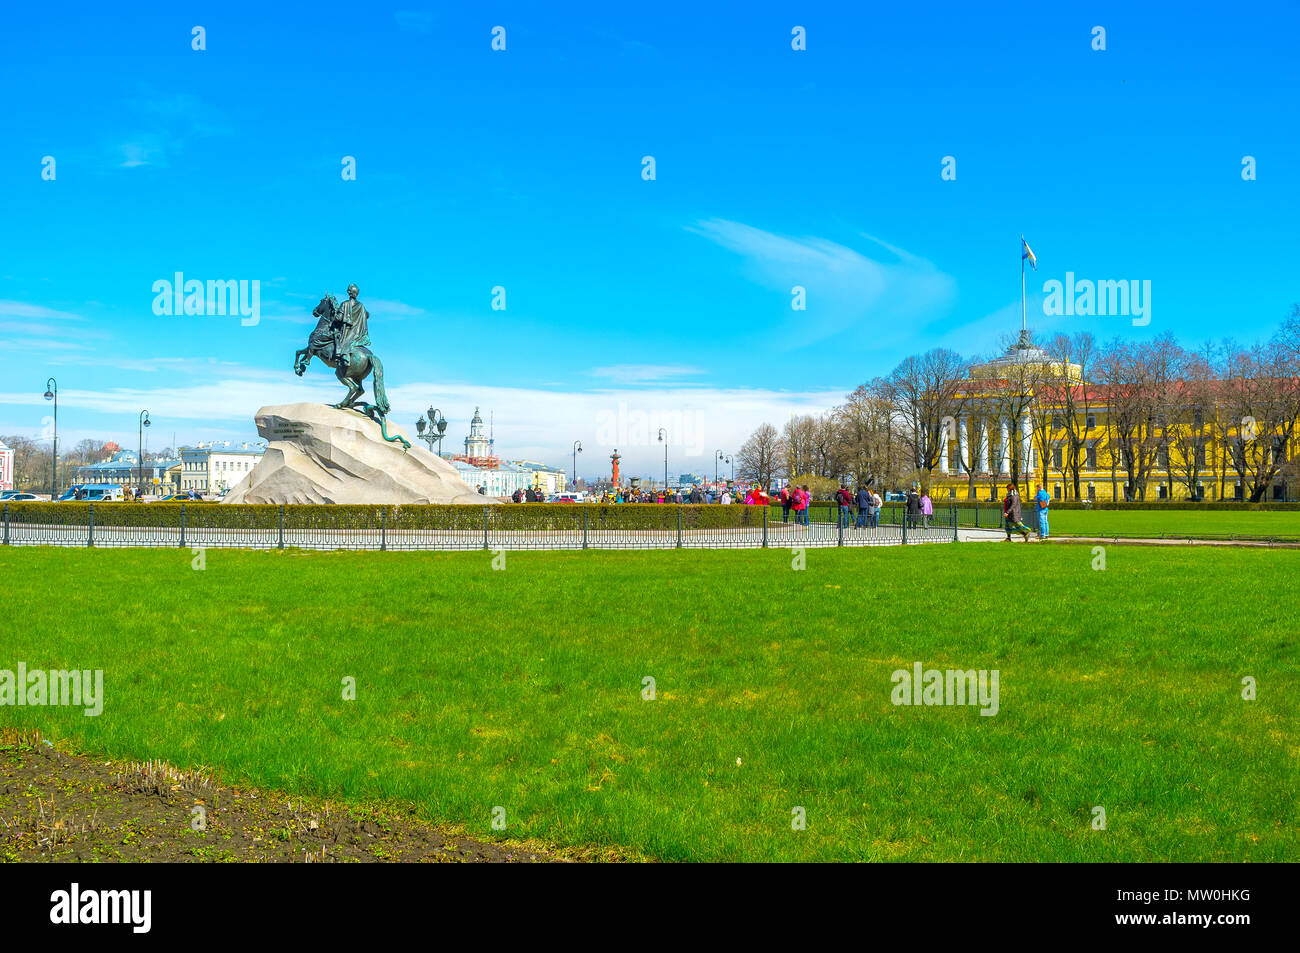 SAINT PETERSBURG, RUSSIA - APRIL 27, 2015: Equestrian monument to Peter the Great is the most known monument in the city mounted on huge rock, called  - Stock Image